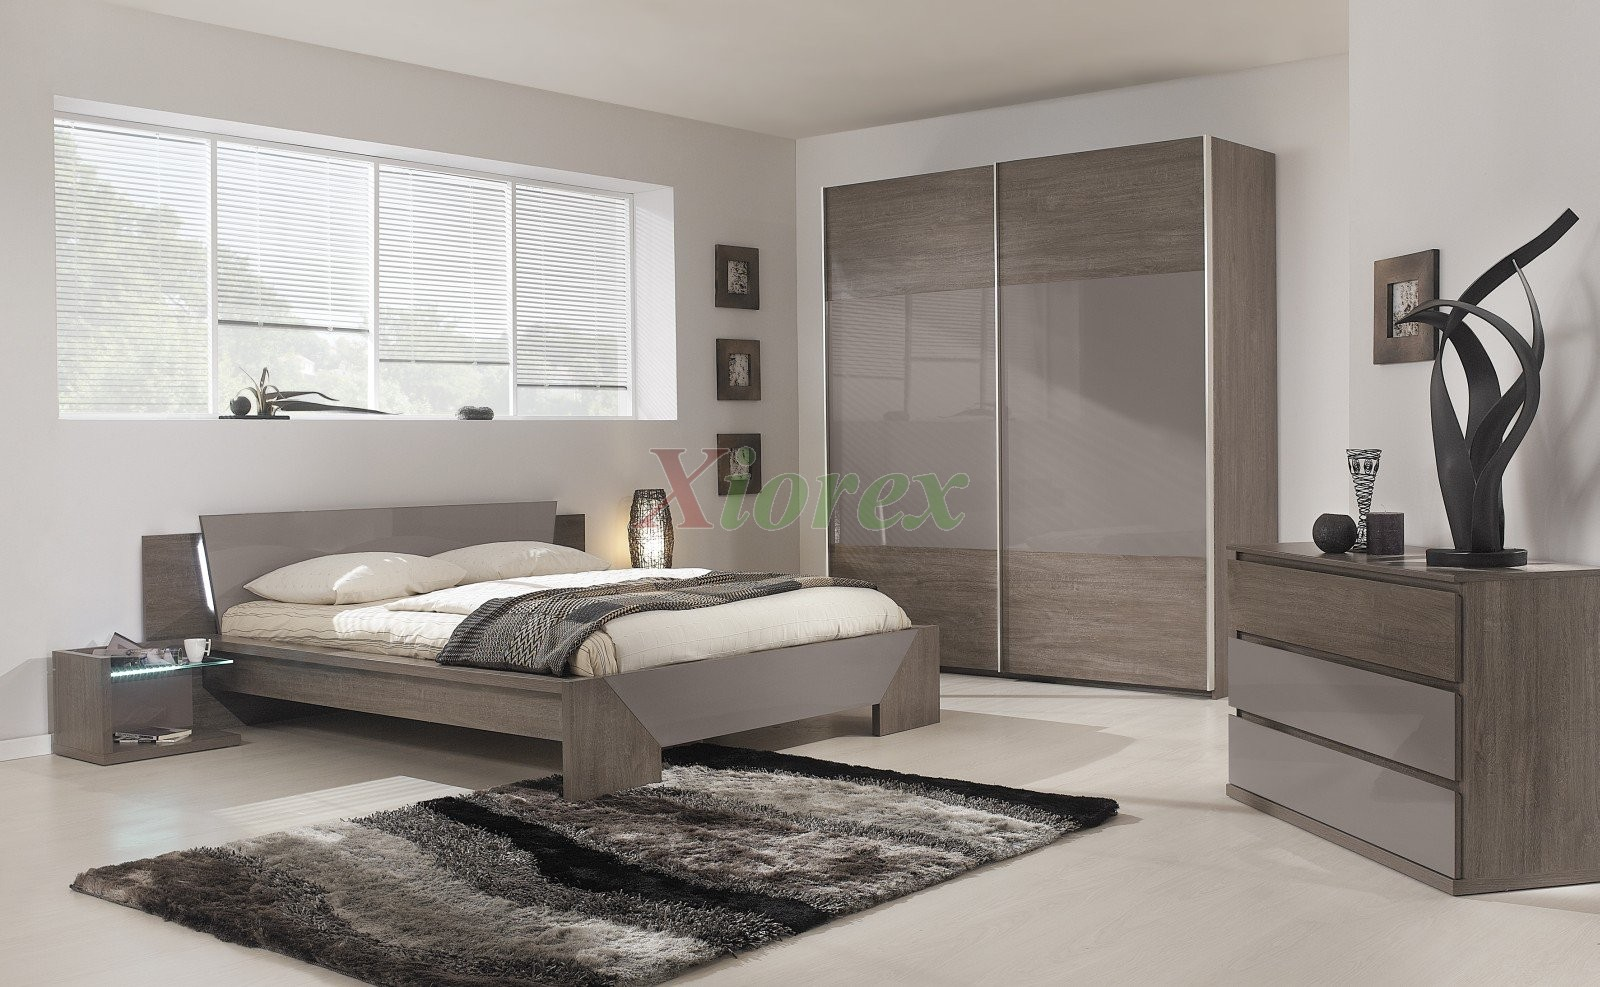 Modern bed gami trapeze bed set modern bedroom set by for Modern bedroom